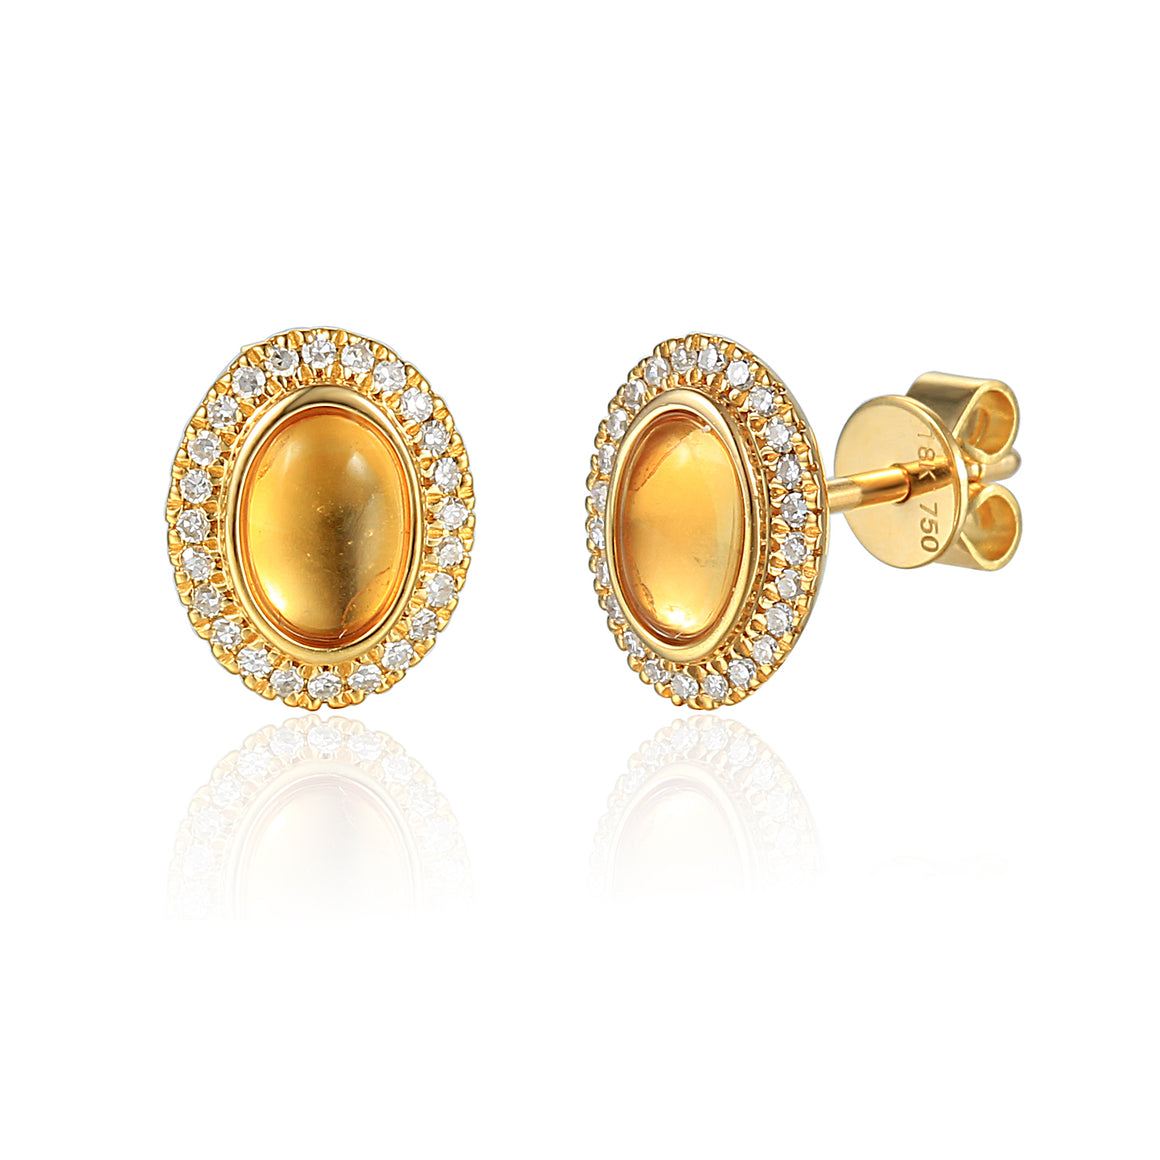 9ct Yellow Gold Oval Cabochon Citrine and Diamond Earring